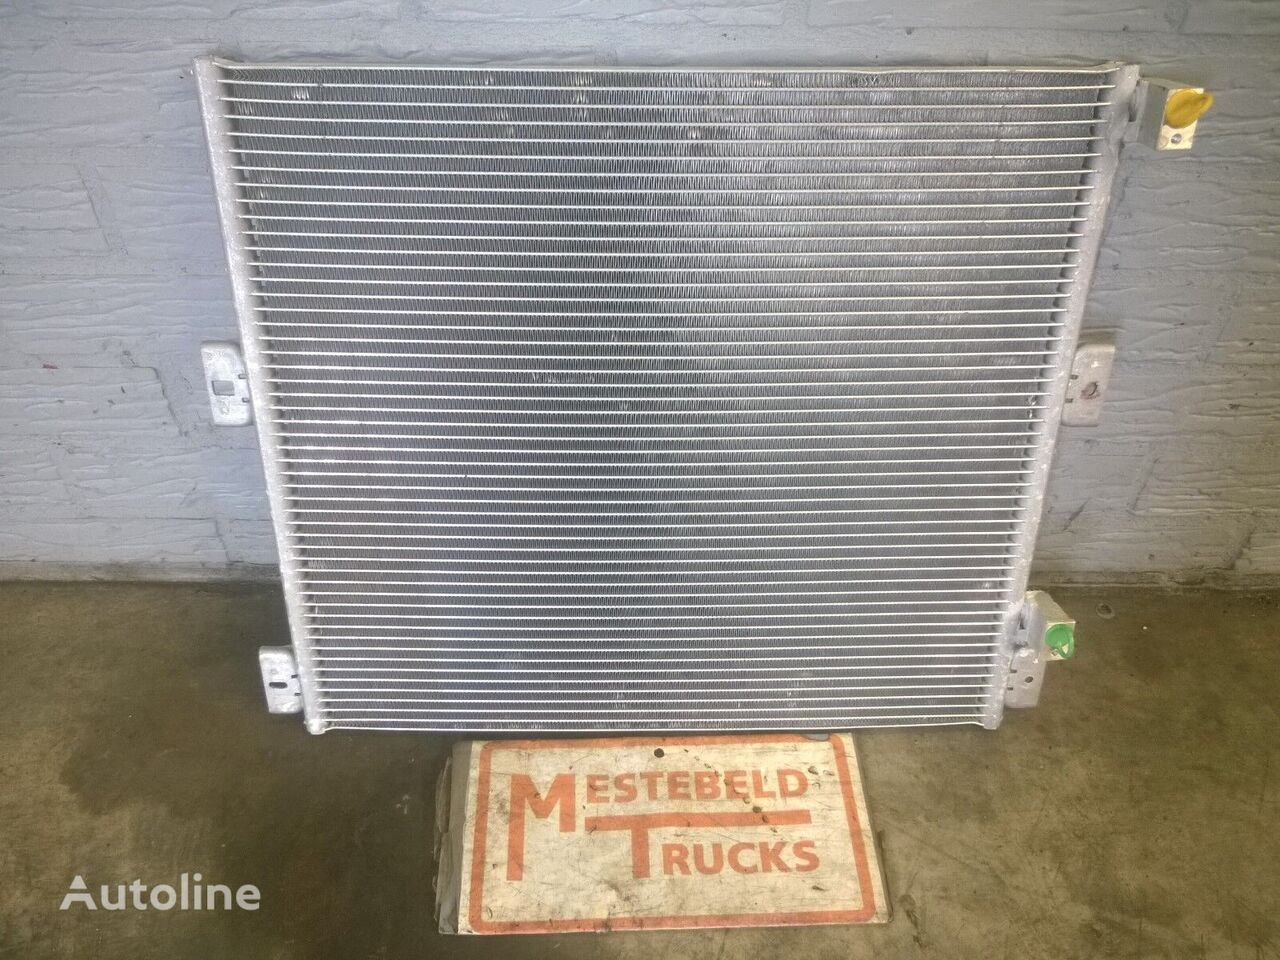 RENAULT Aircoradiateur automobile air conditioning for RENAULT Midlum truck